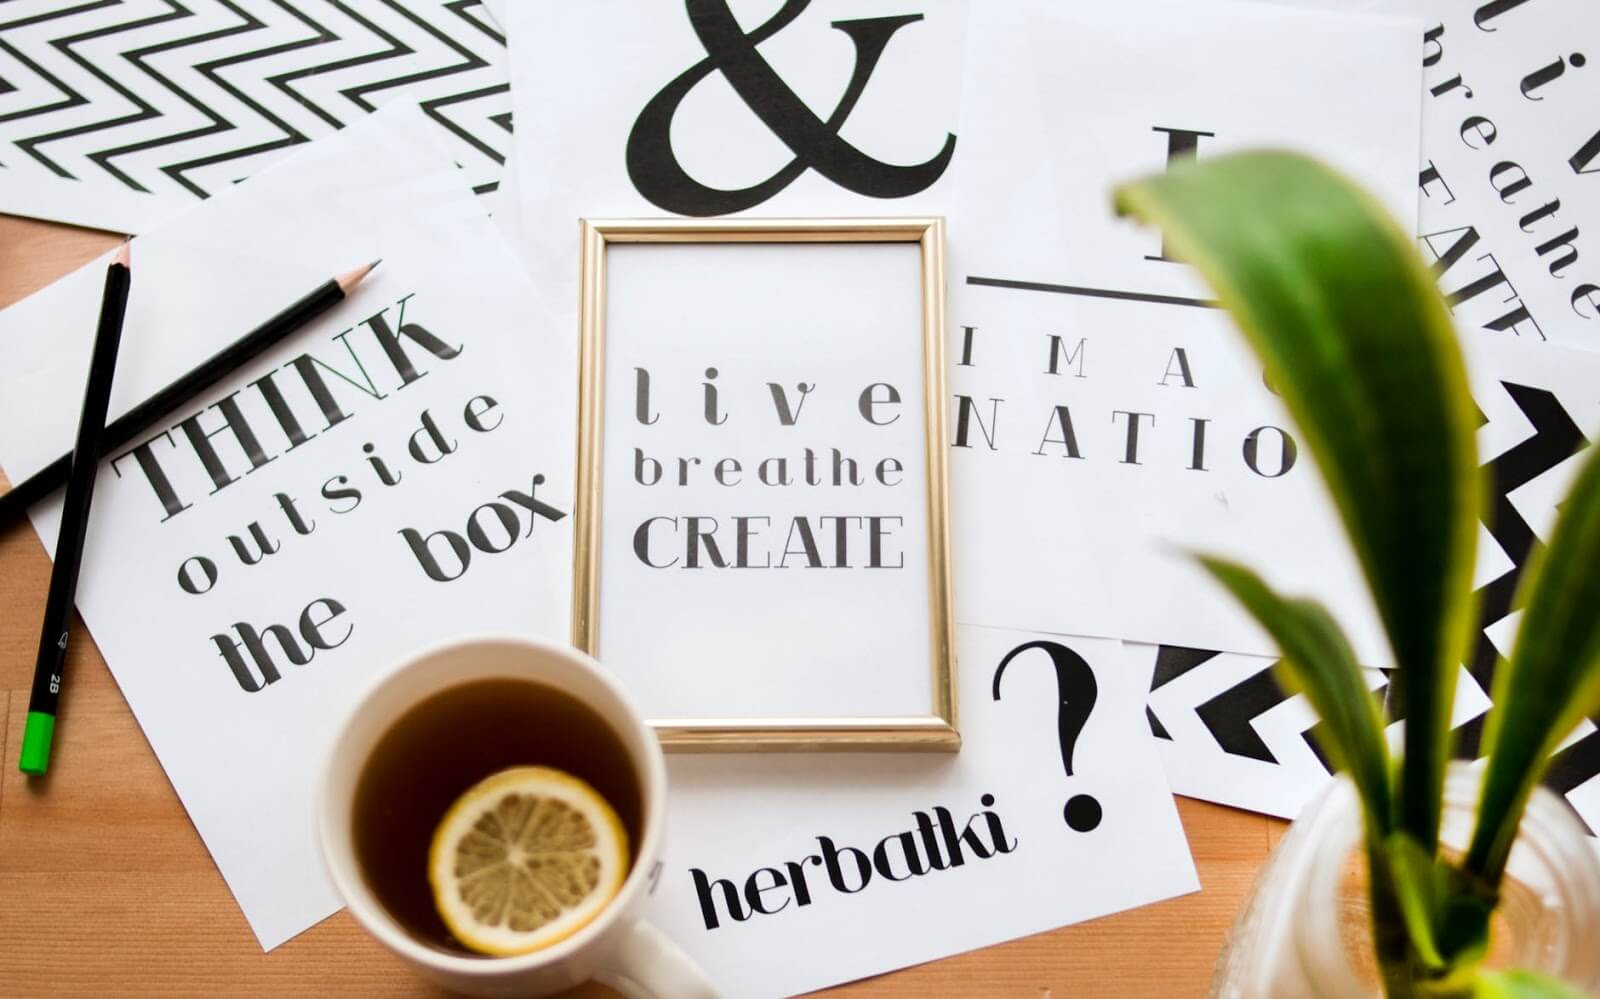 Free fonts Typography